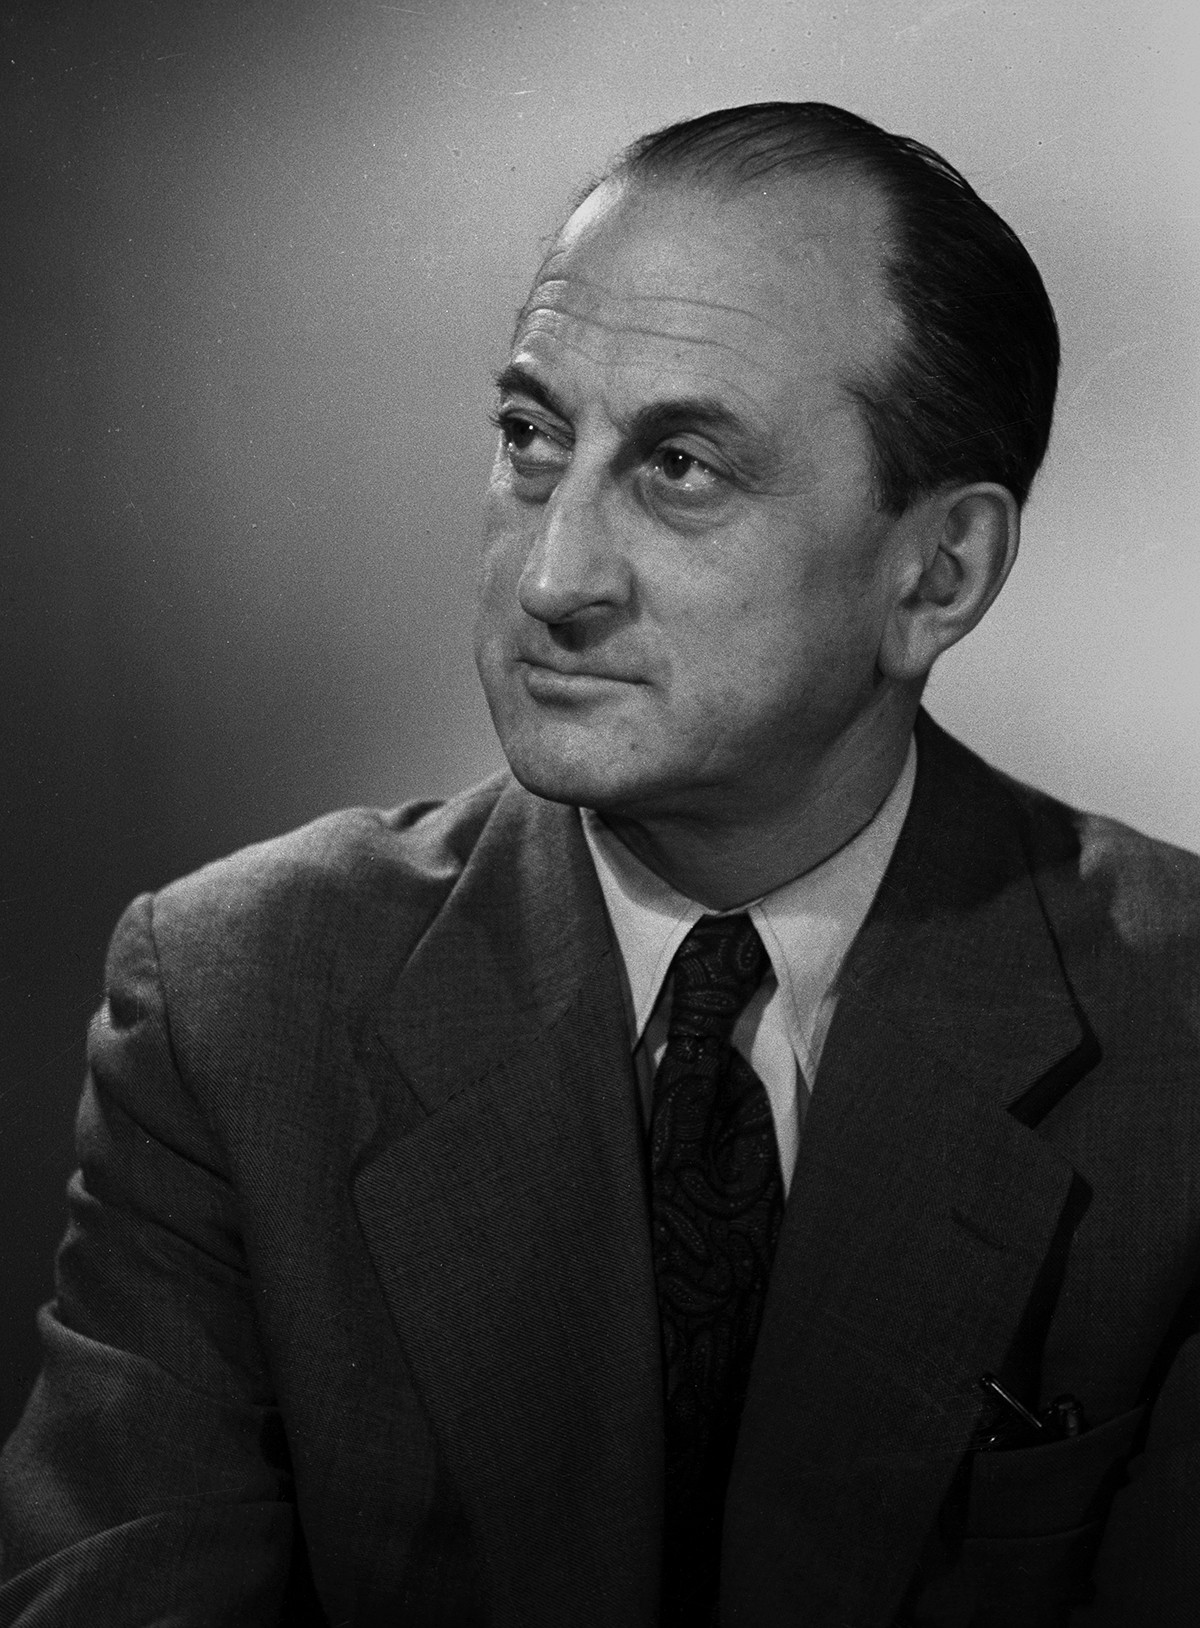 Mikhail Romm liked to experiment with different movie genres.